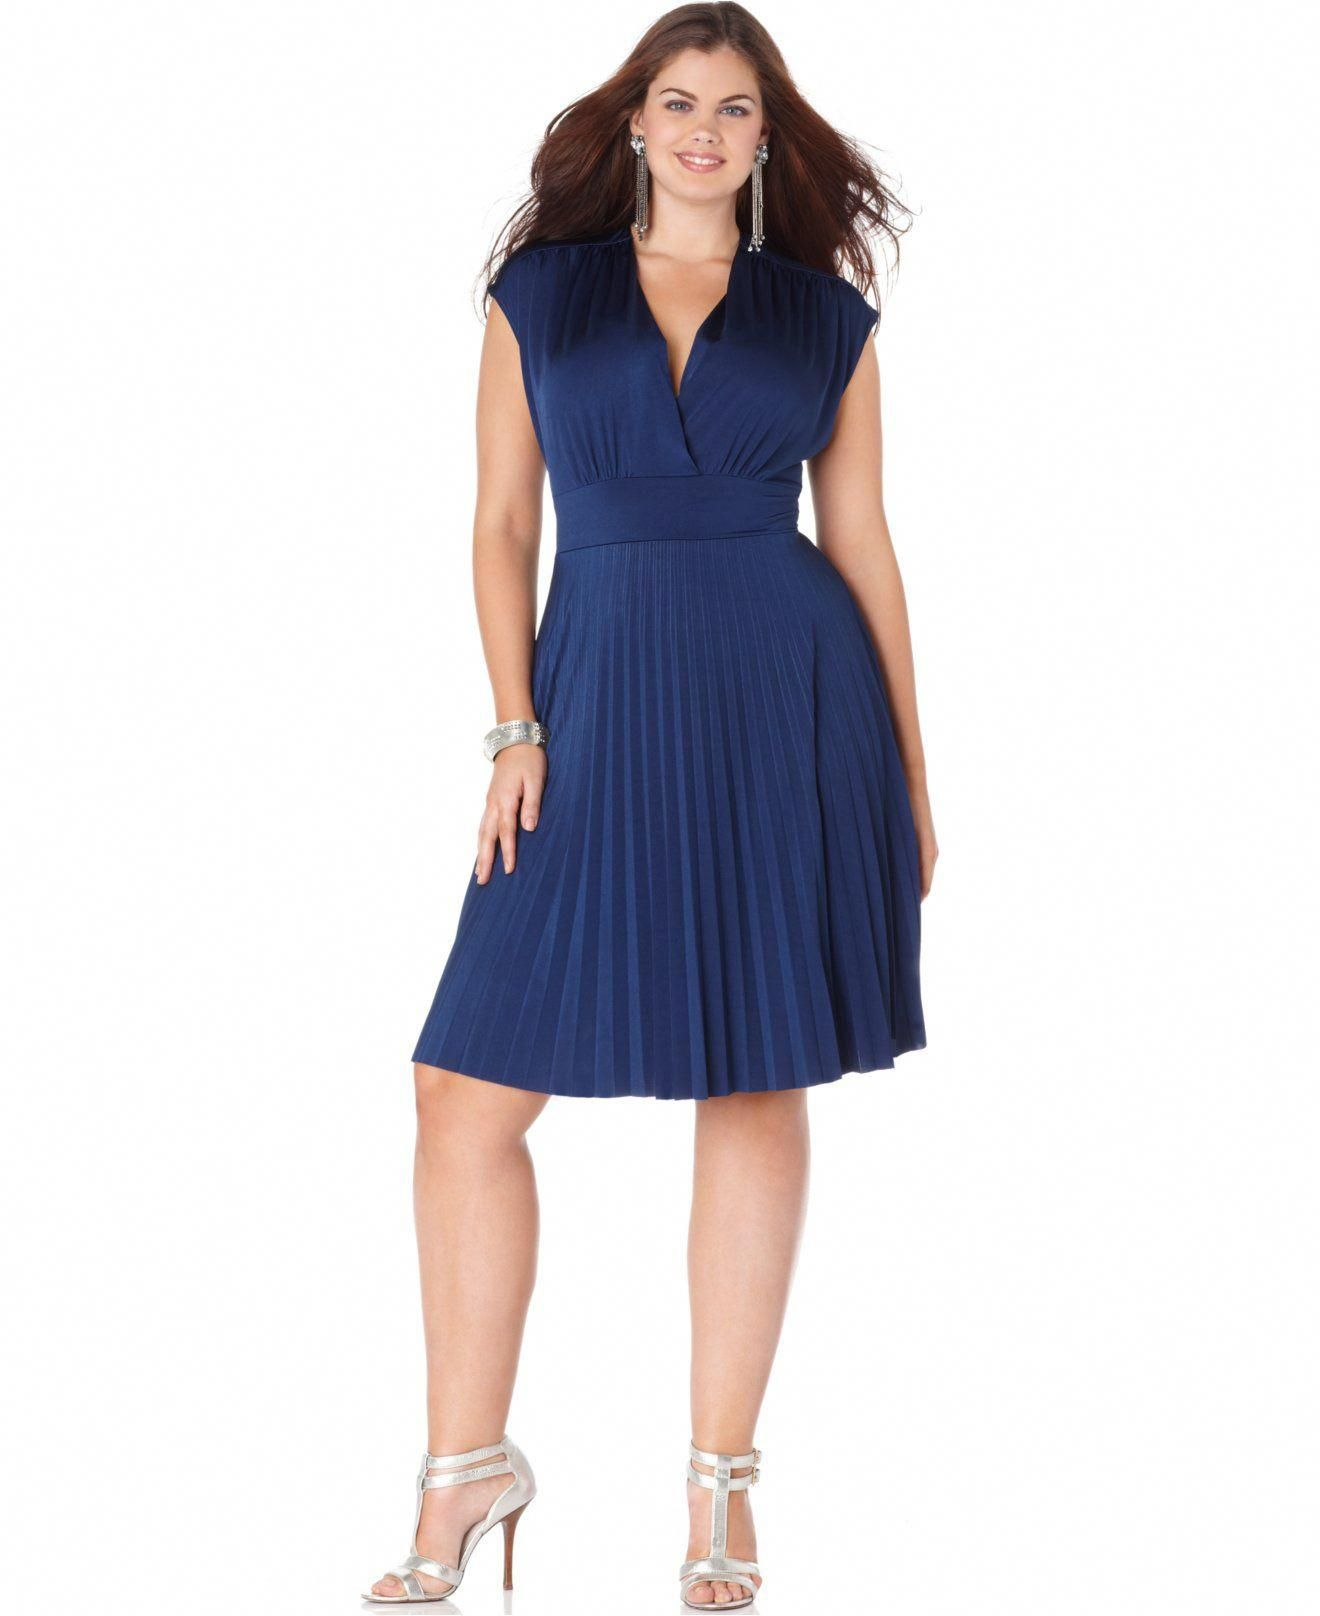 Plus Size Women S Lounge Dresses Plussizewomensshiftdresses